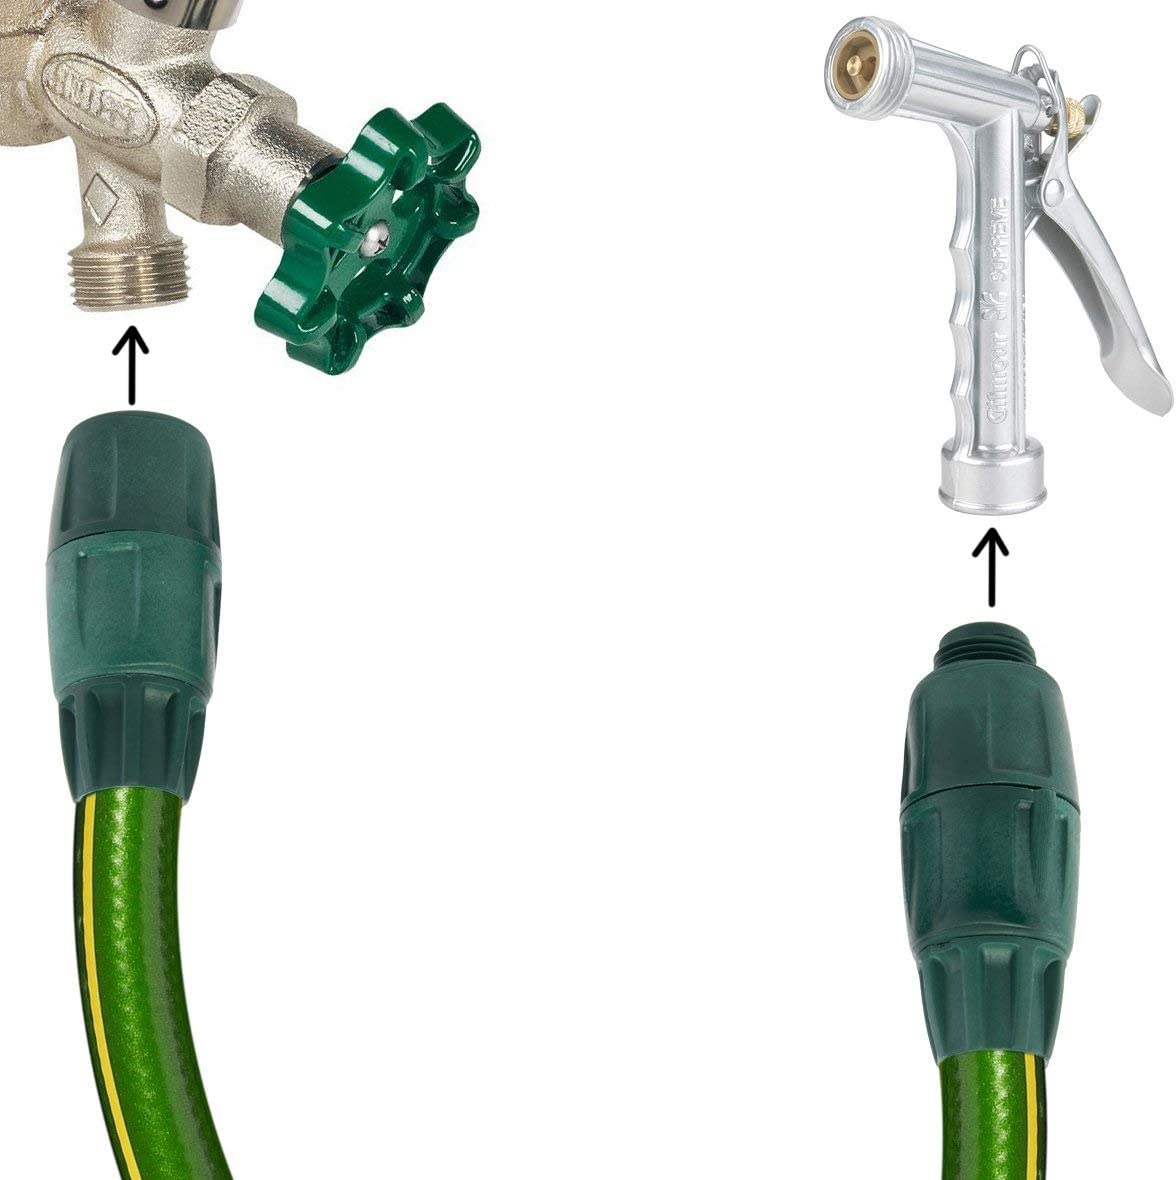 Use in Garden Hose 5//8 inches 1.6 cm Hose Connector Set in 6 pcs Coupling System by Swan Hoselink